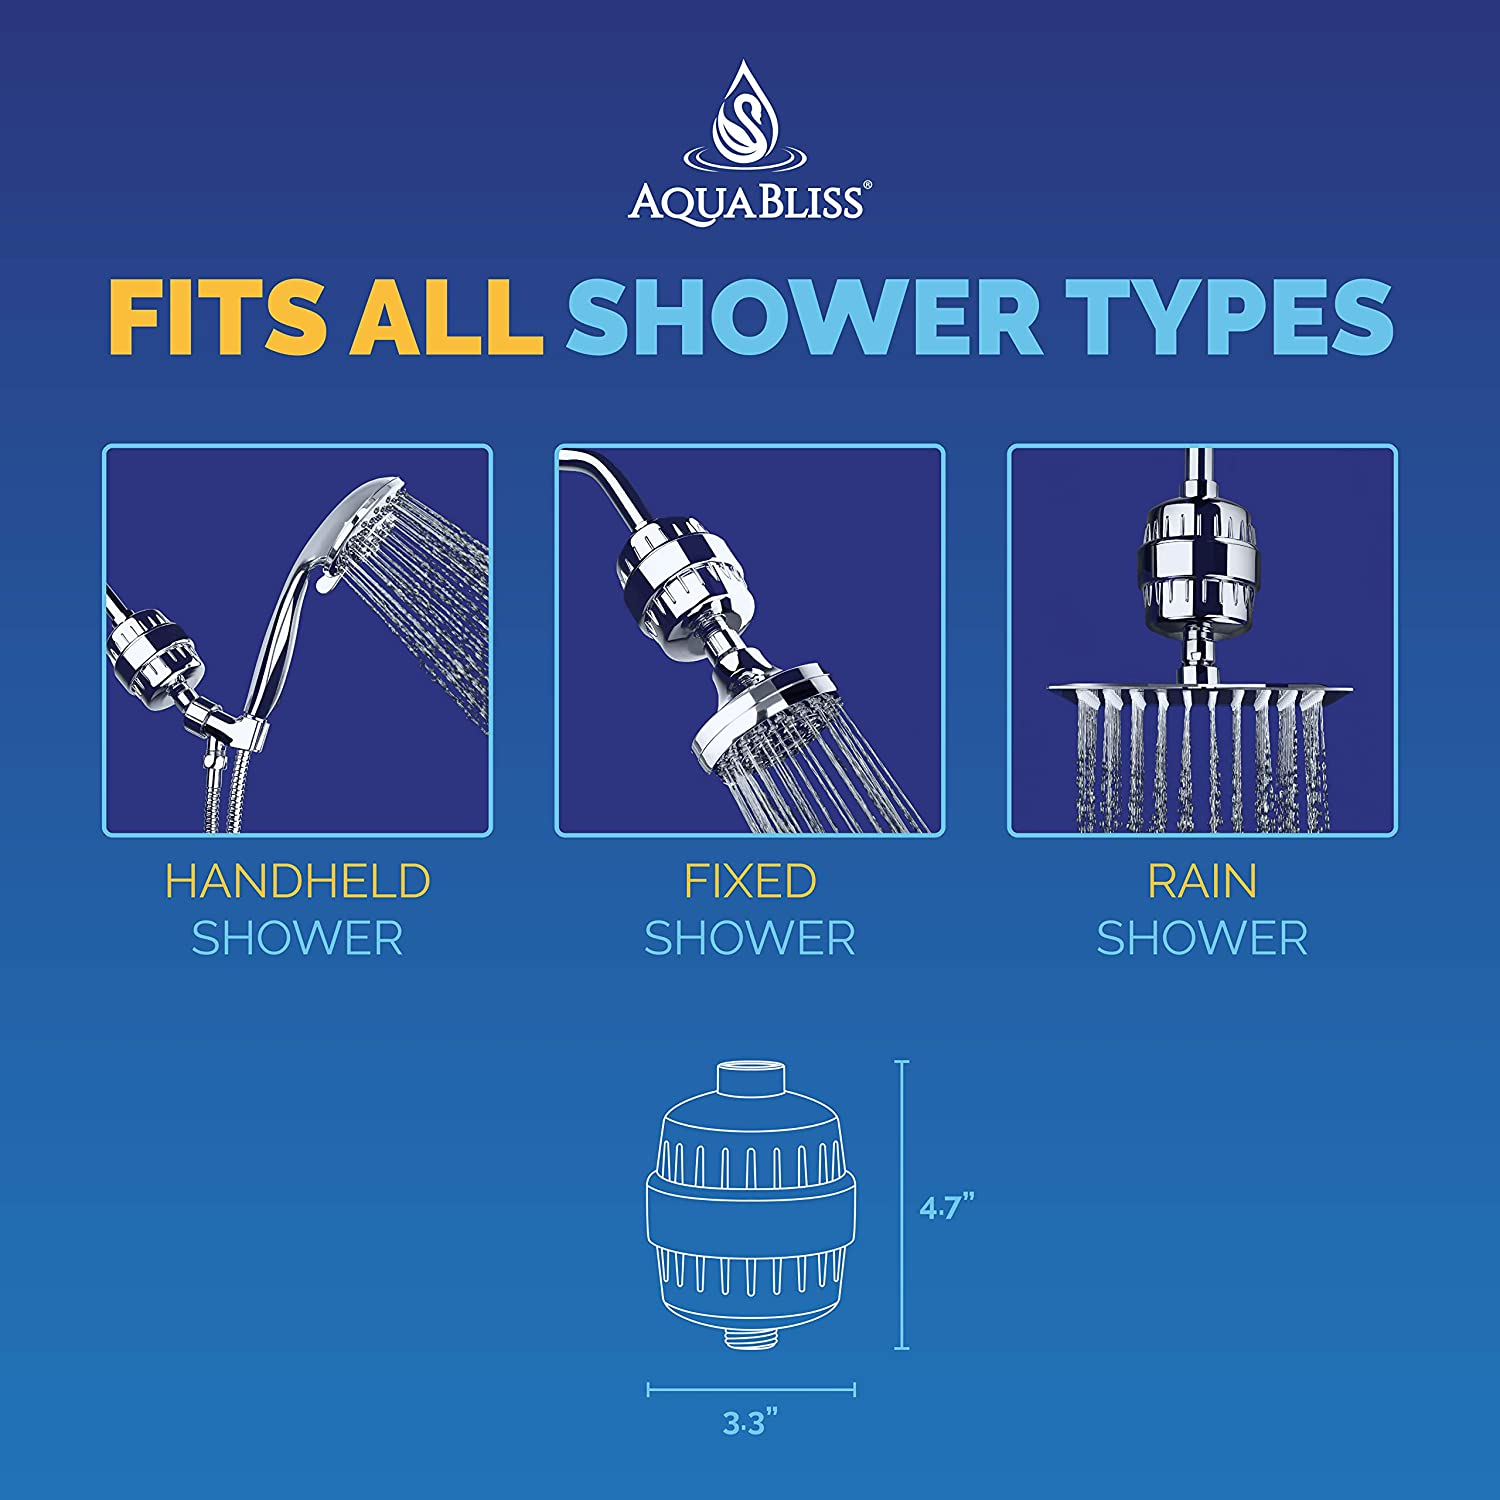 AquaBliss SF220 Shower Filter usage